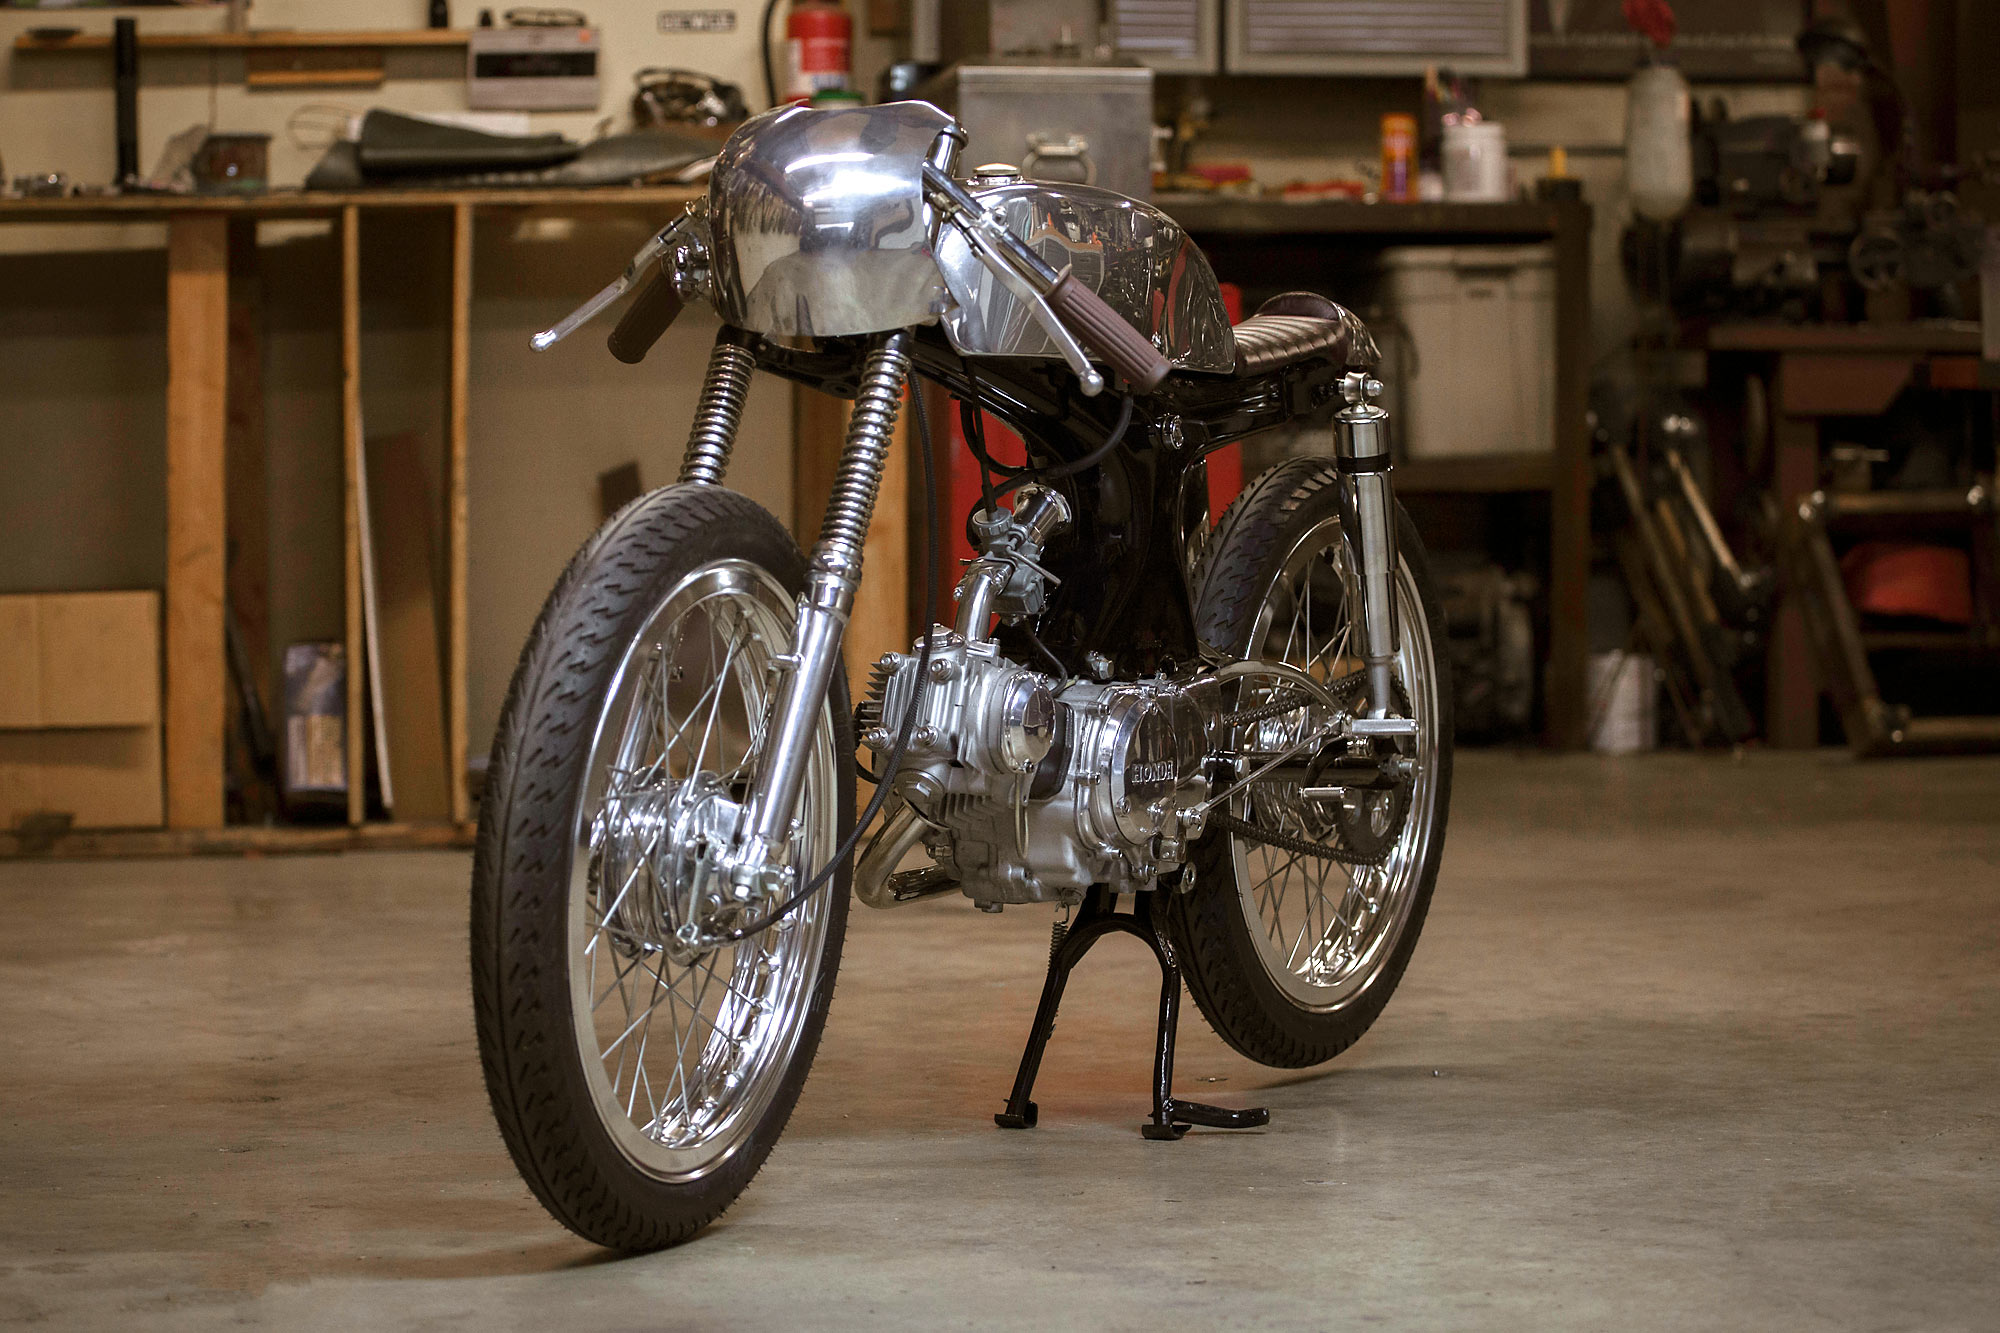 Family First Kott Motorcycles Heirloom Honda S90 Racer 1970 Cb 90 Motorcycle And While They Specialize In Big Old Cbs This Time Around Theyve Tackled A Smaller Offering 1969